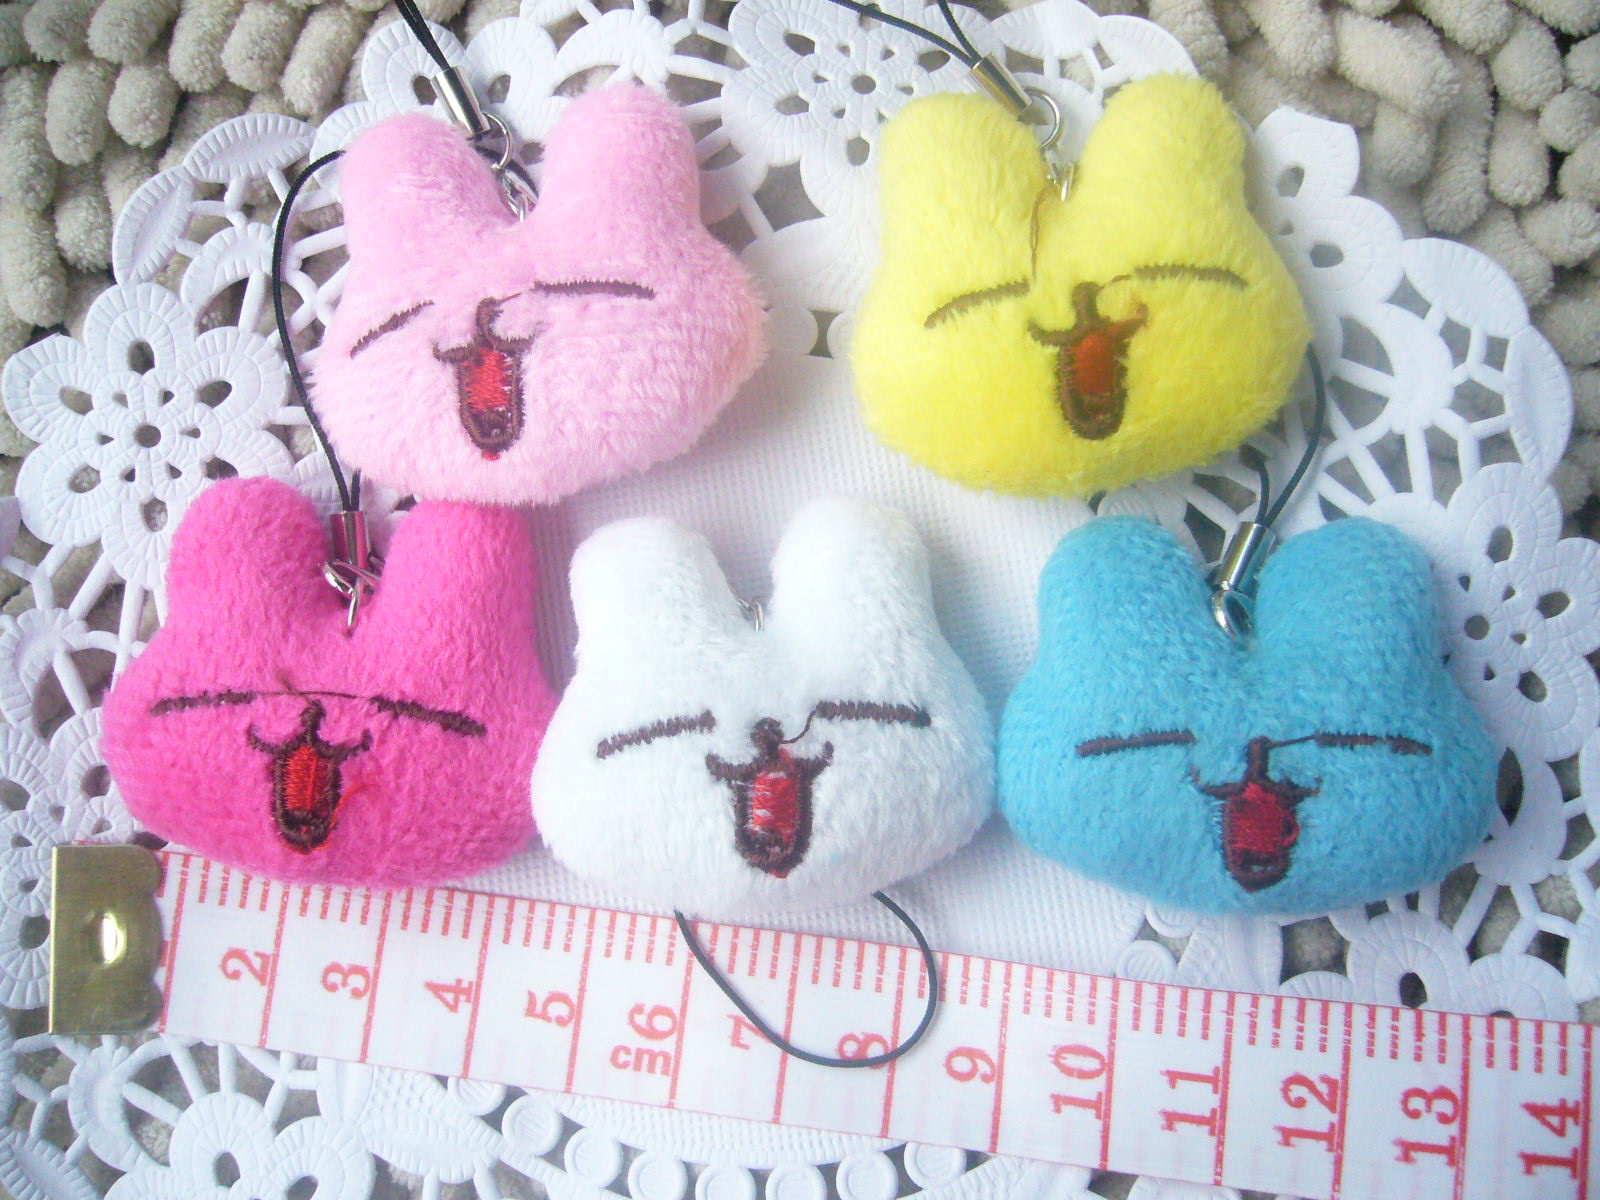 Plush toy dolls doll rabbit mobile phone small pendant wedding giftsPlush toy dolls doll rabbit mobile phone small pendant wedding gifts